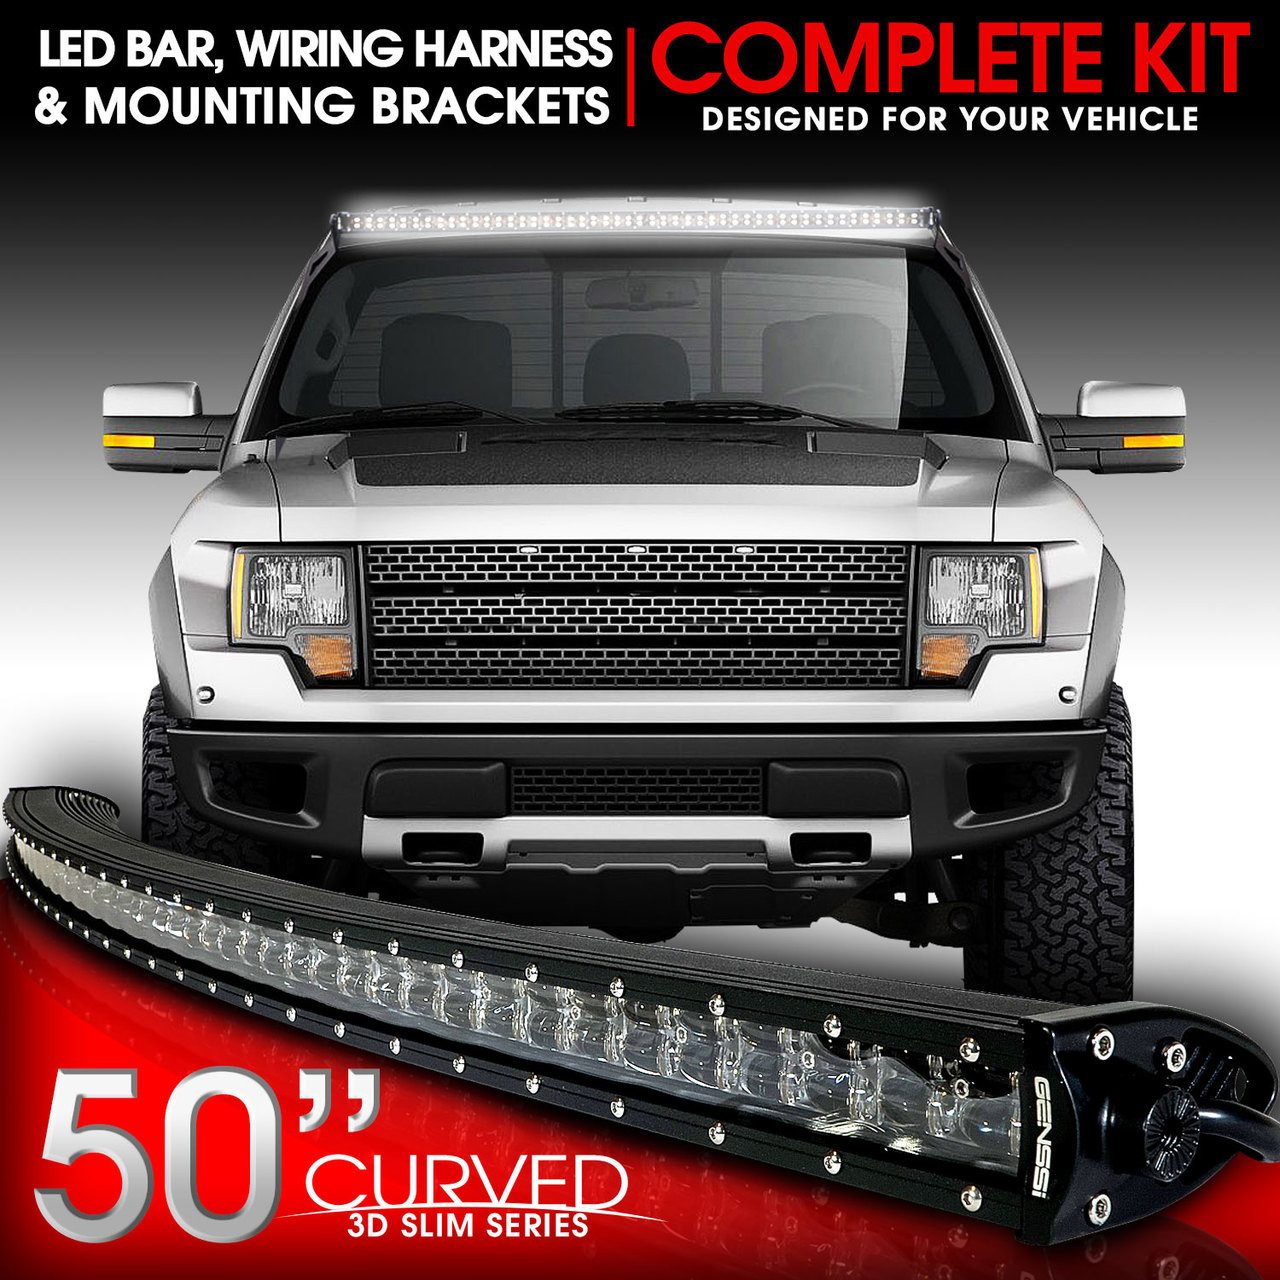 led light bar curved 288w 50 inches bracket wiring harness kit for ford f150 svt [ 1280 x 1280 Pixel ]